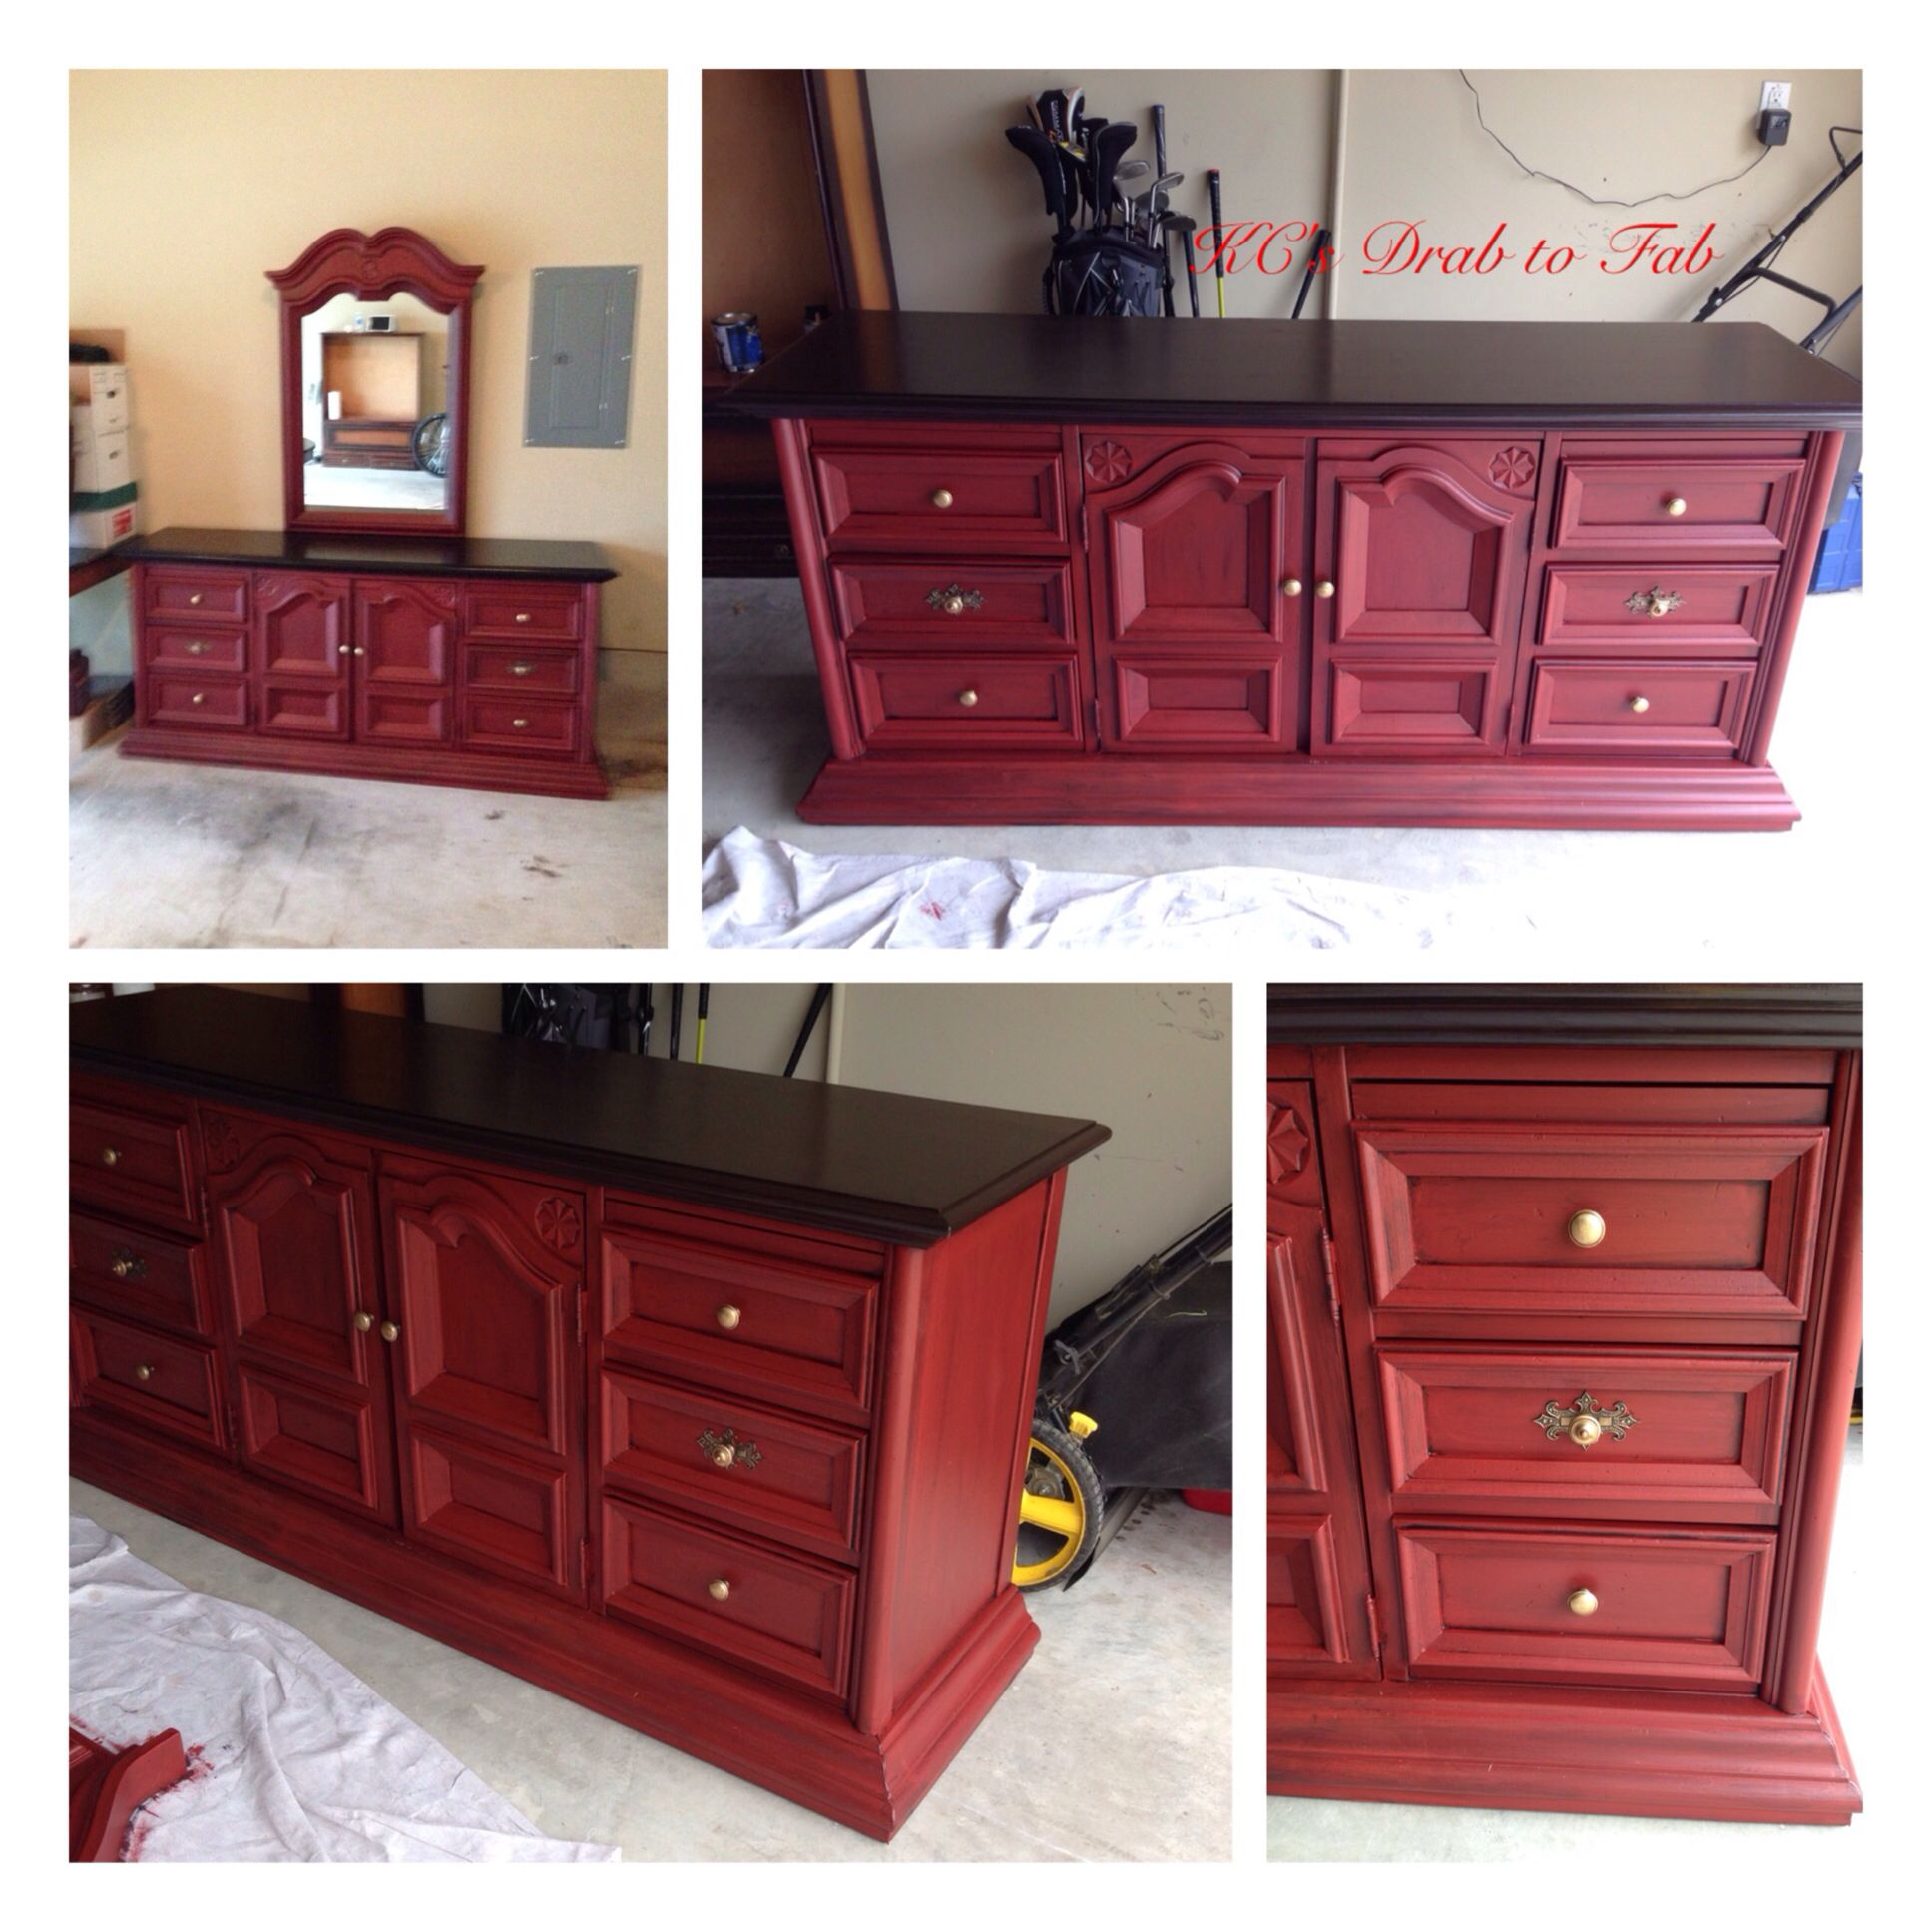 Used General Finishes Brick Red Milk Paint and GF Black Glaze